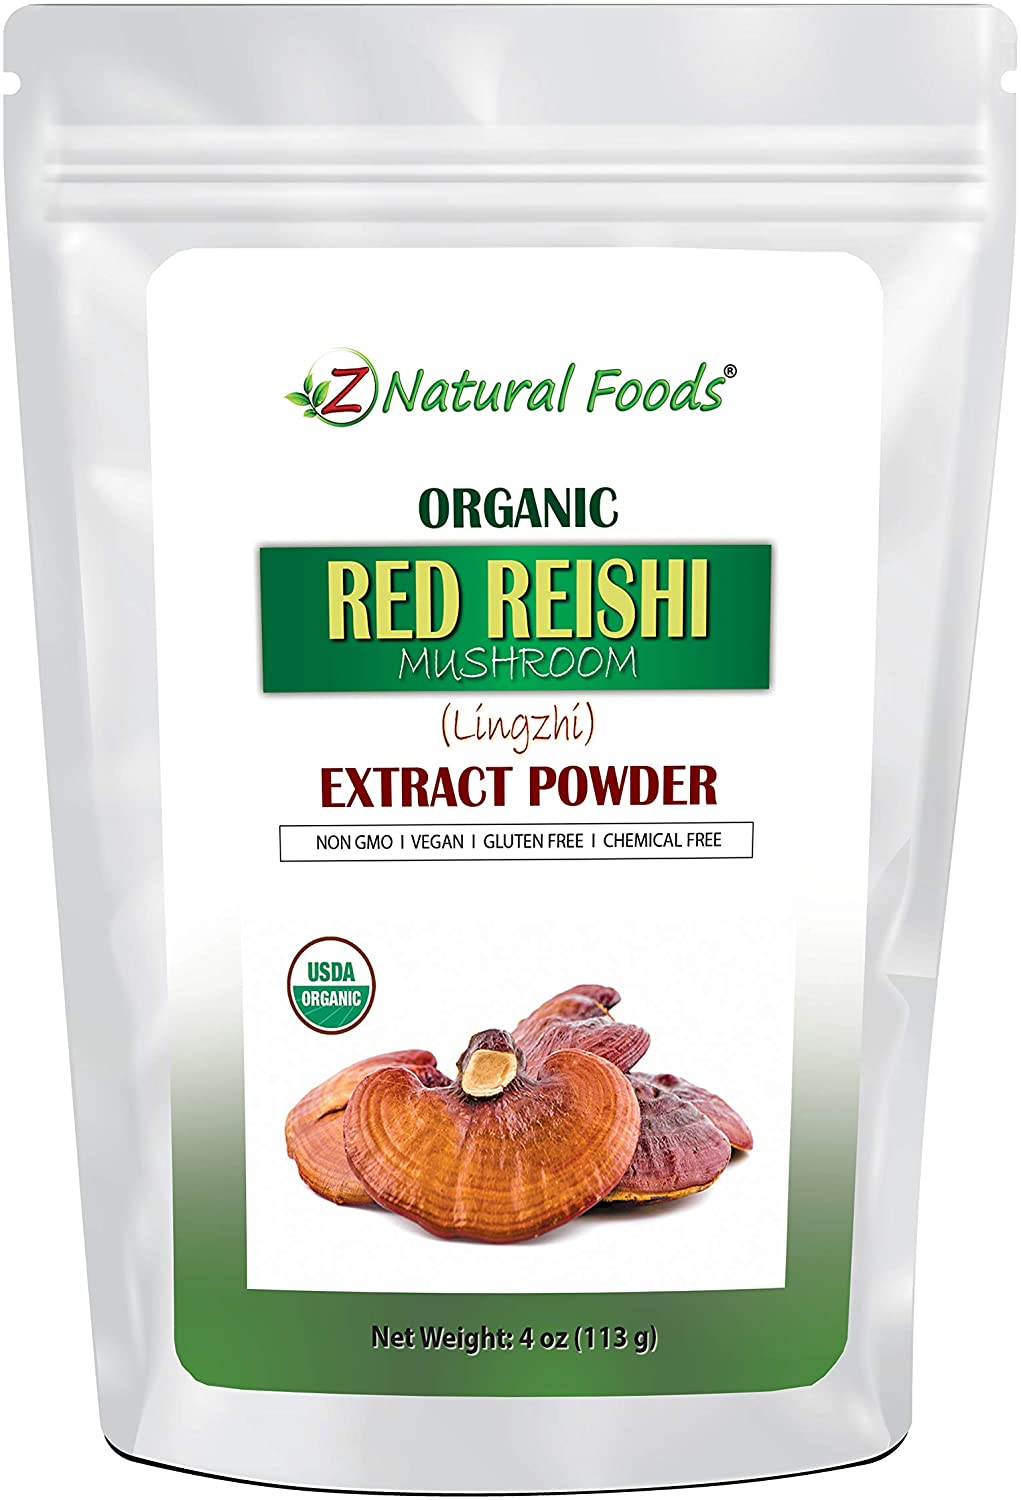 Organic Red Reishi Mushroom Powder - 4:1 Extract - Support Immune System & Get Restful Sleep - Supplement for Coffee, Tea & Smoothie - Vegan, Non GMO, Gluten Free, Kosher - Lingzhi or Ling Zhi - 4 oz